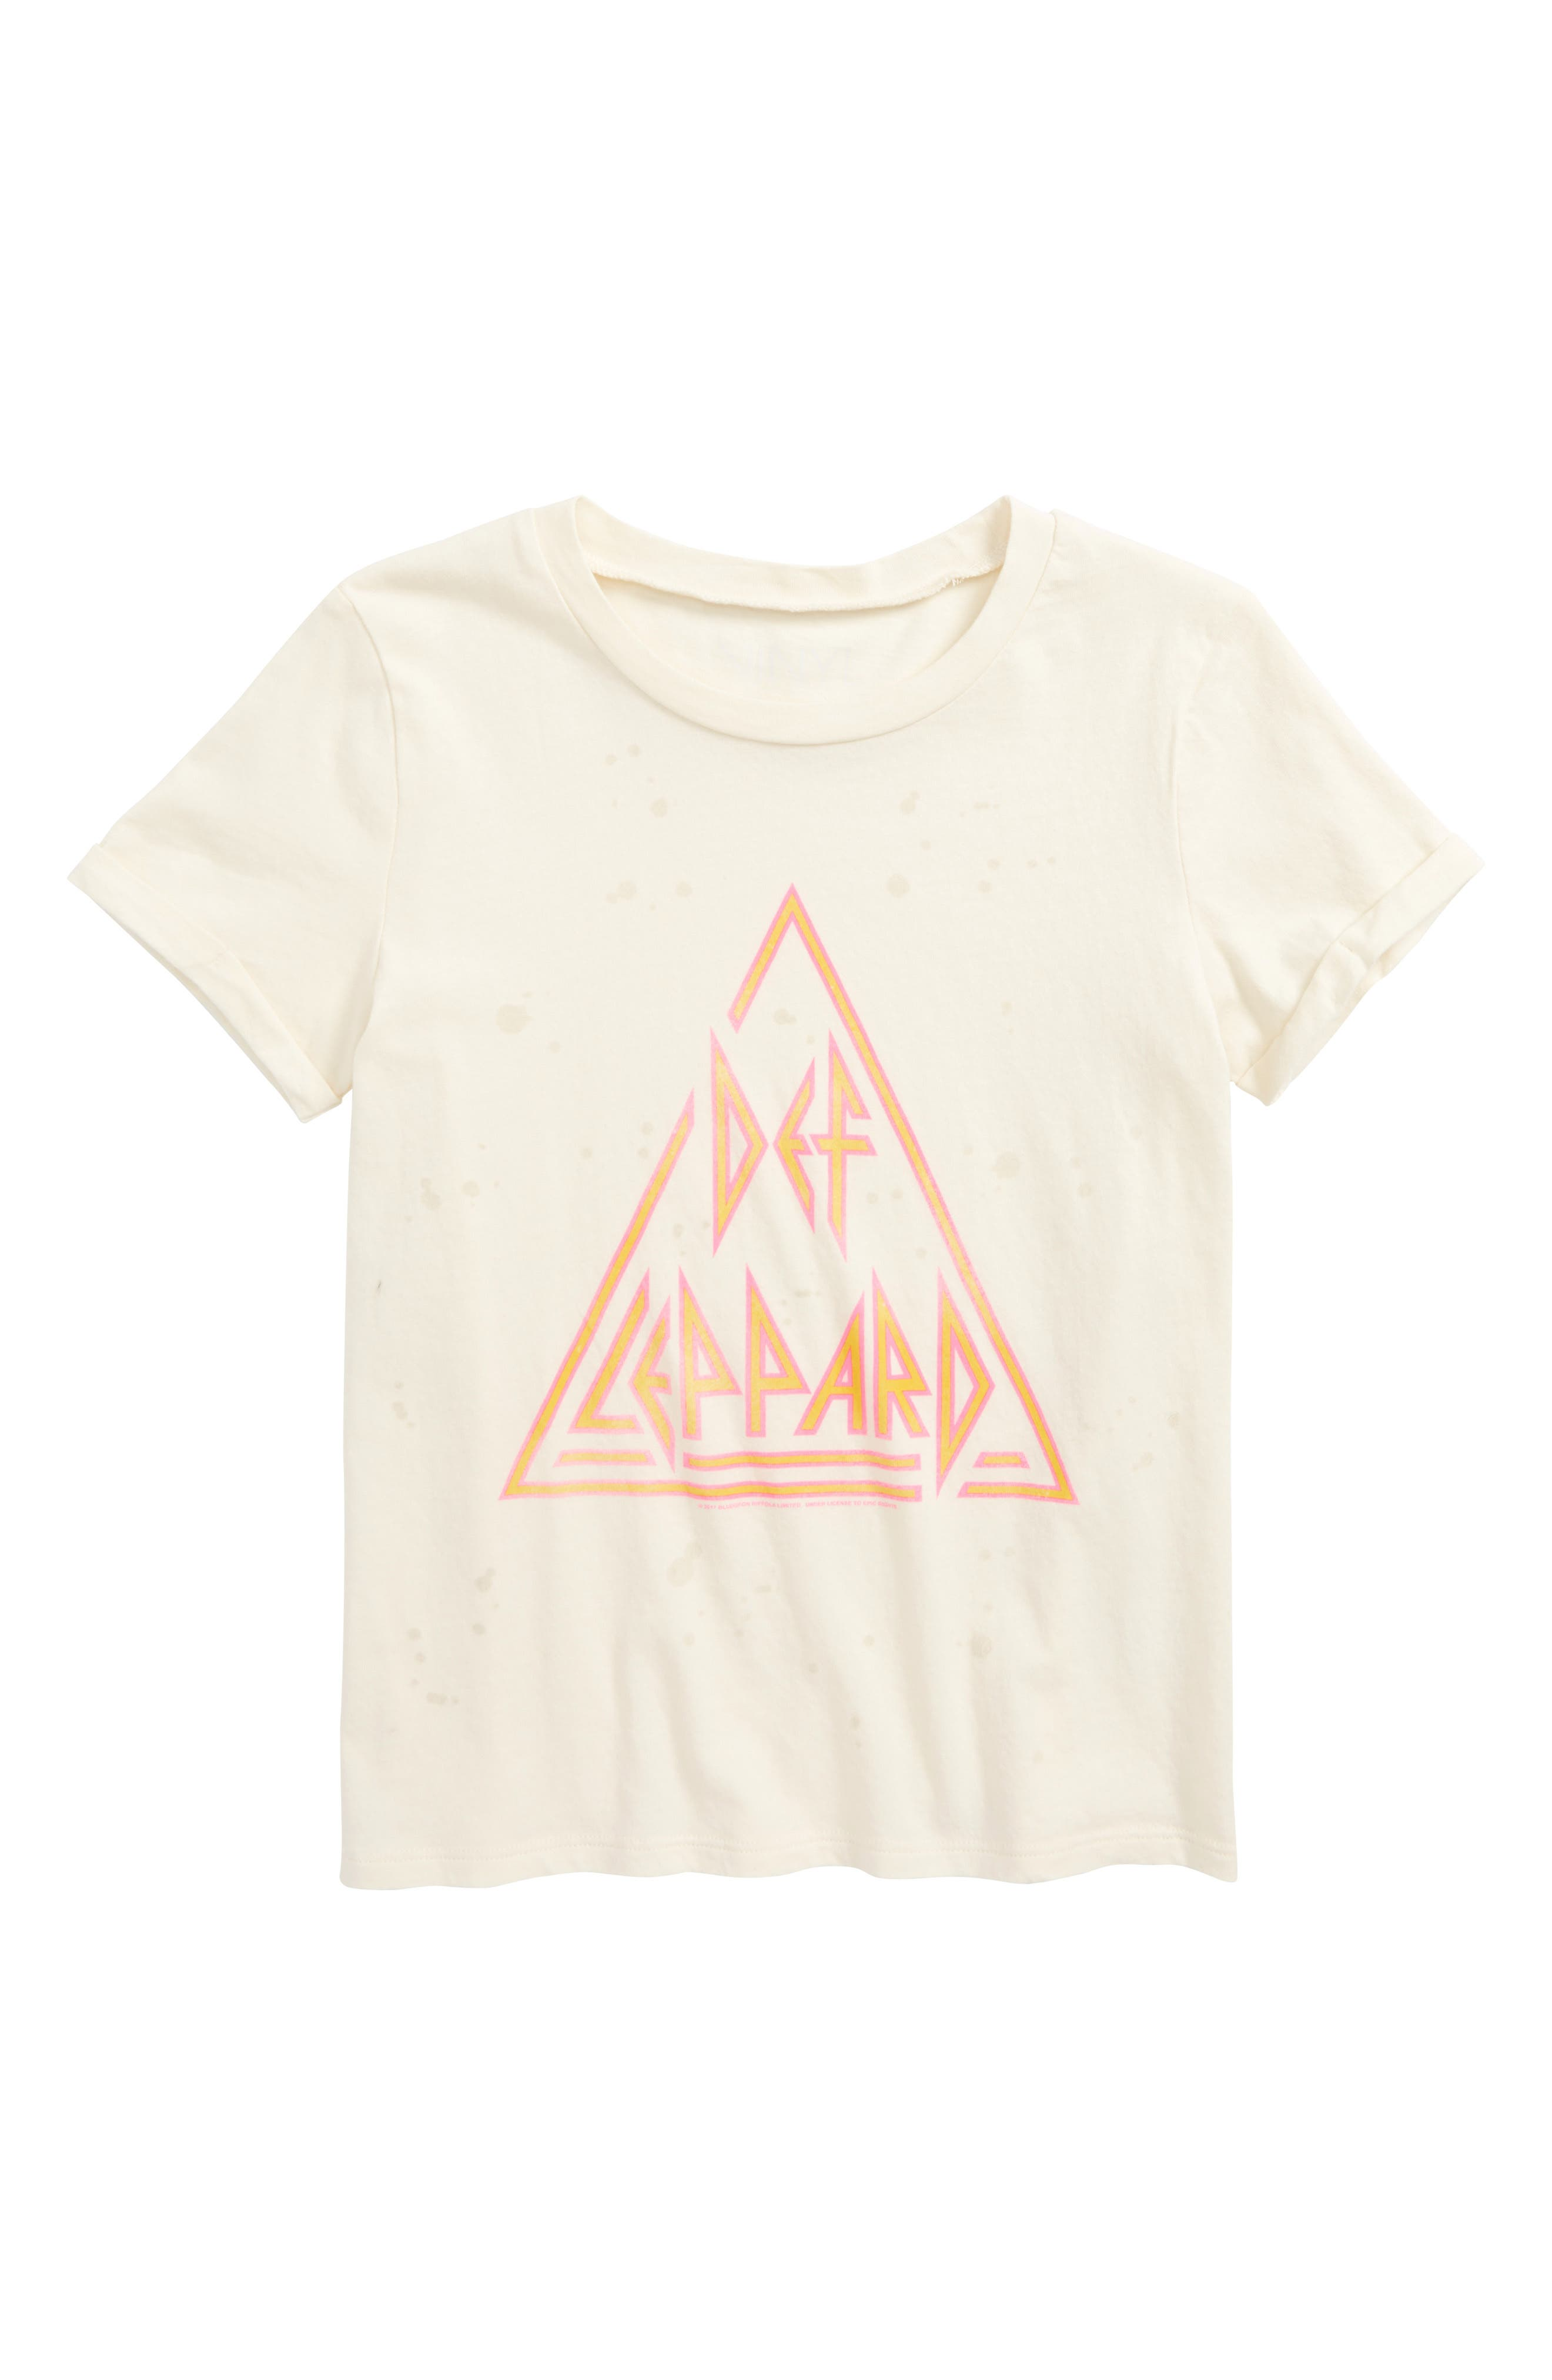 Def Leppard Graphic Tee,                             Main thumbnail 1, color,                             901